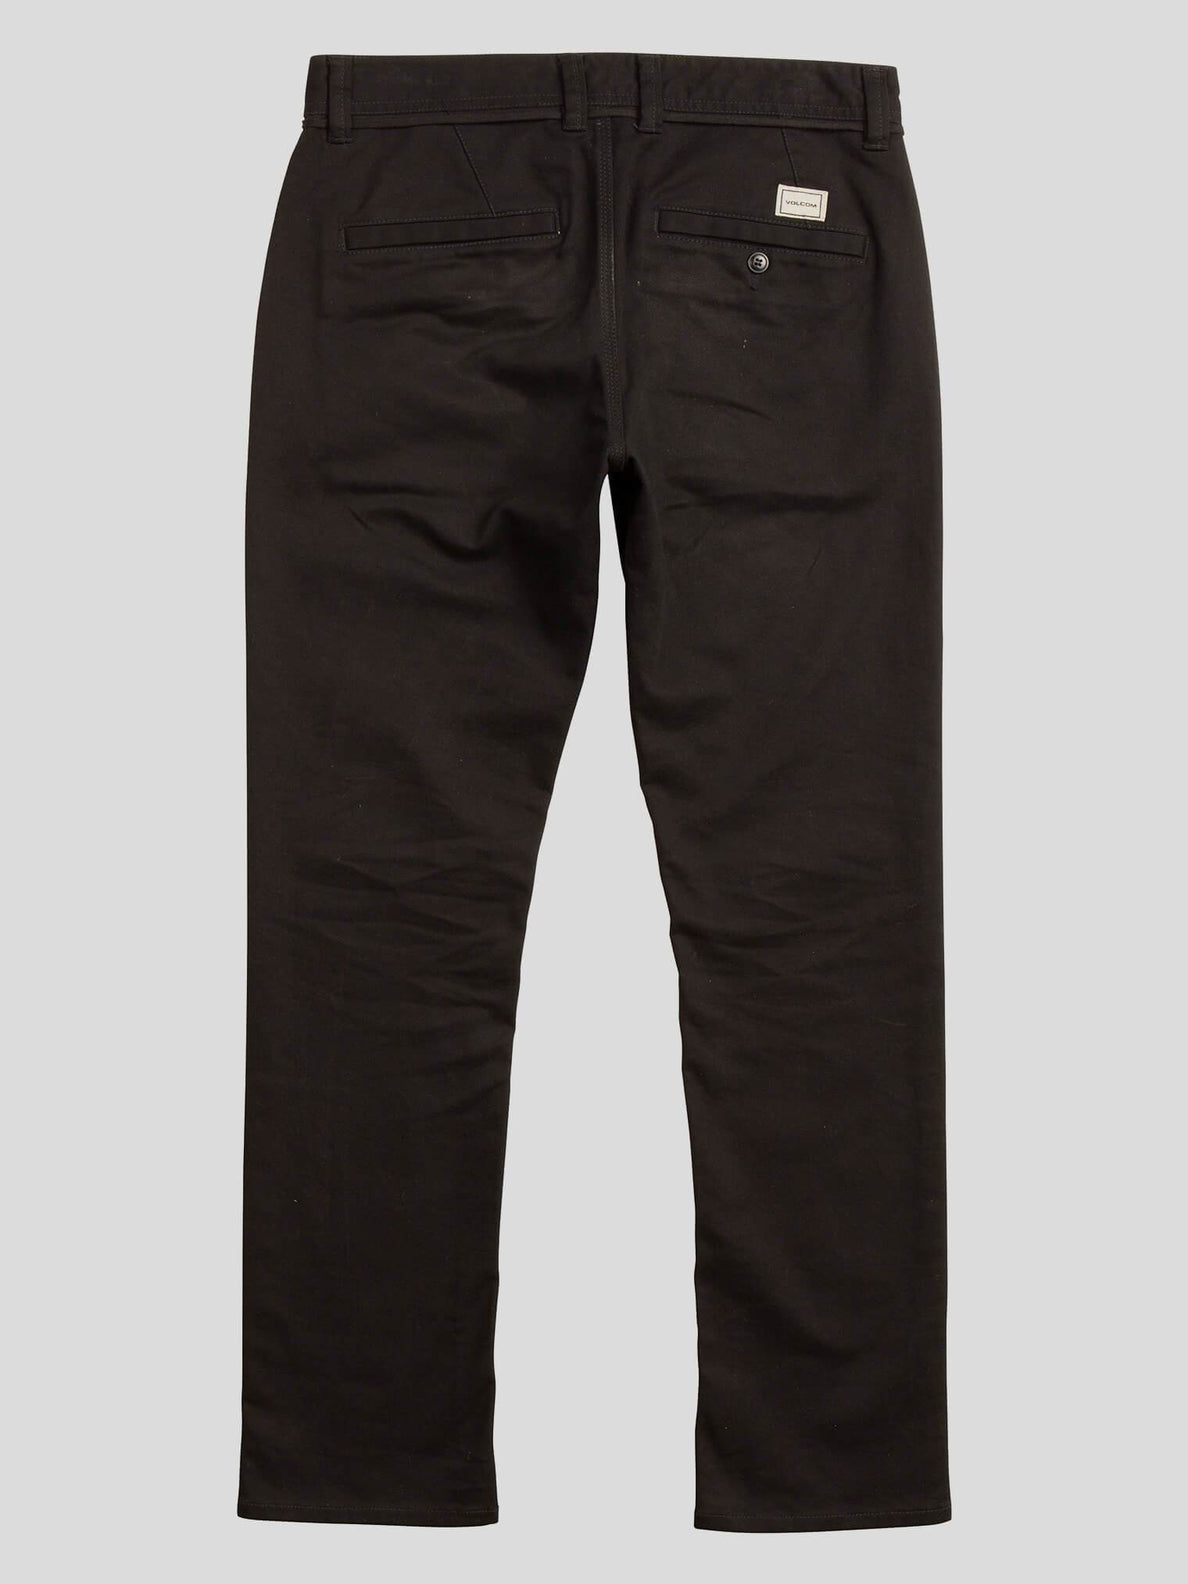 VSm Gritter Slim Chino Pants - Black